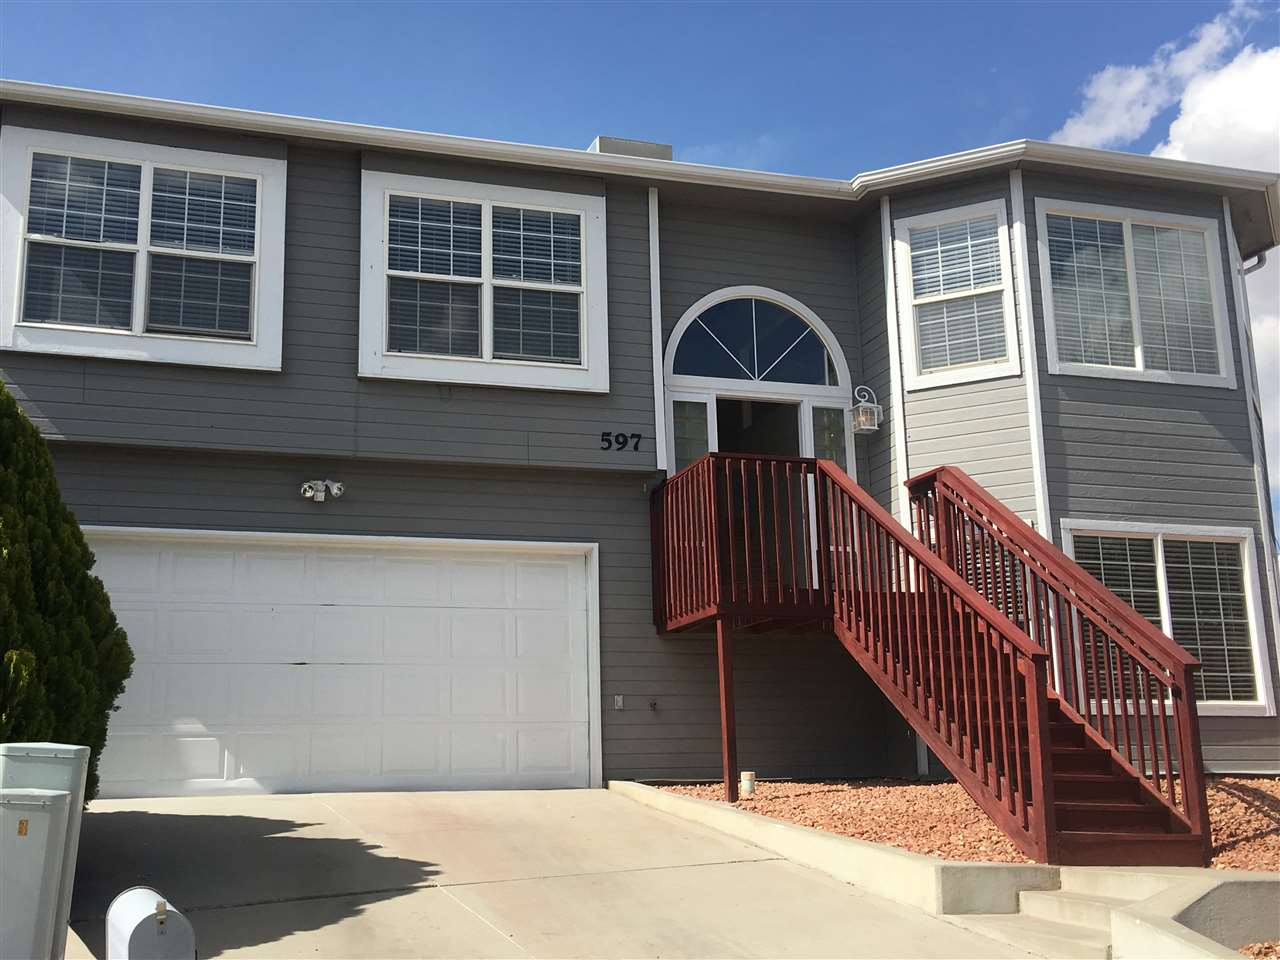 597 N Grandeur Court, Grand Junction, CO 81501